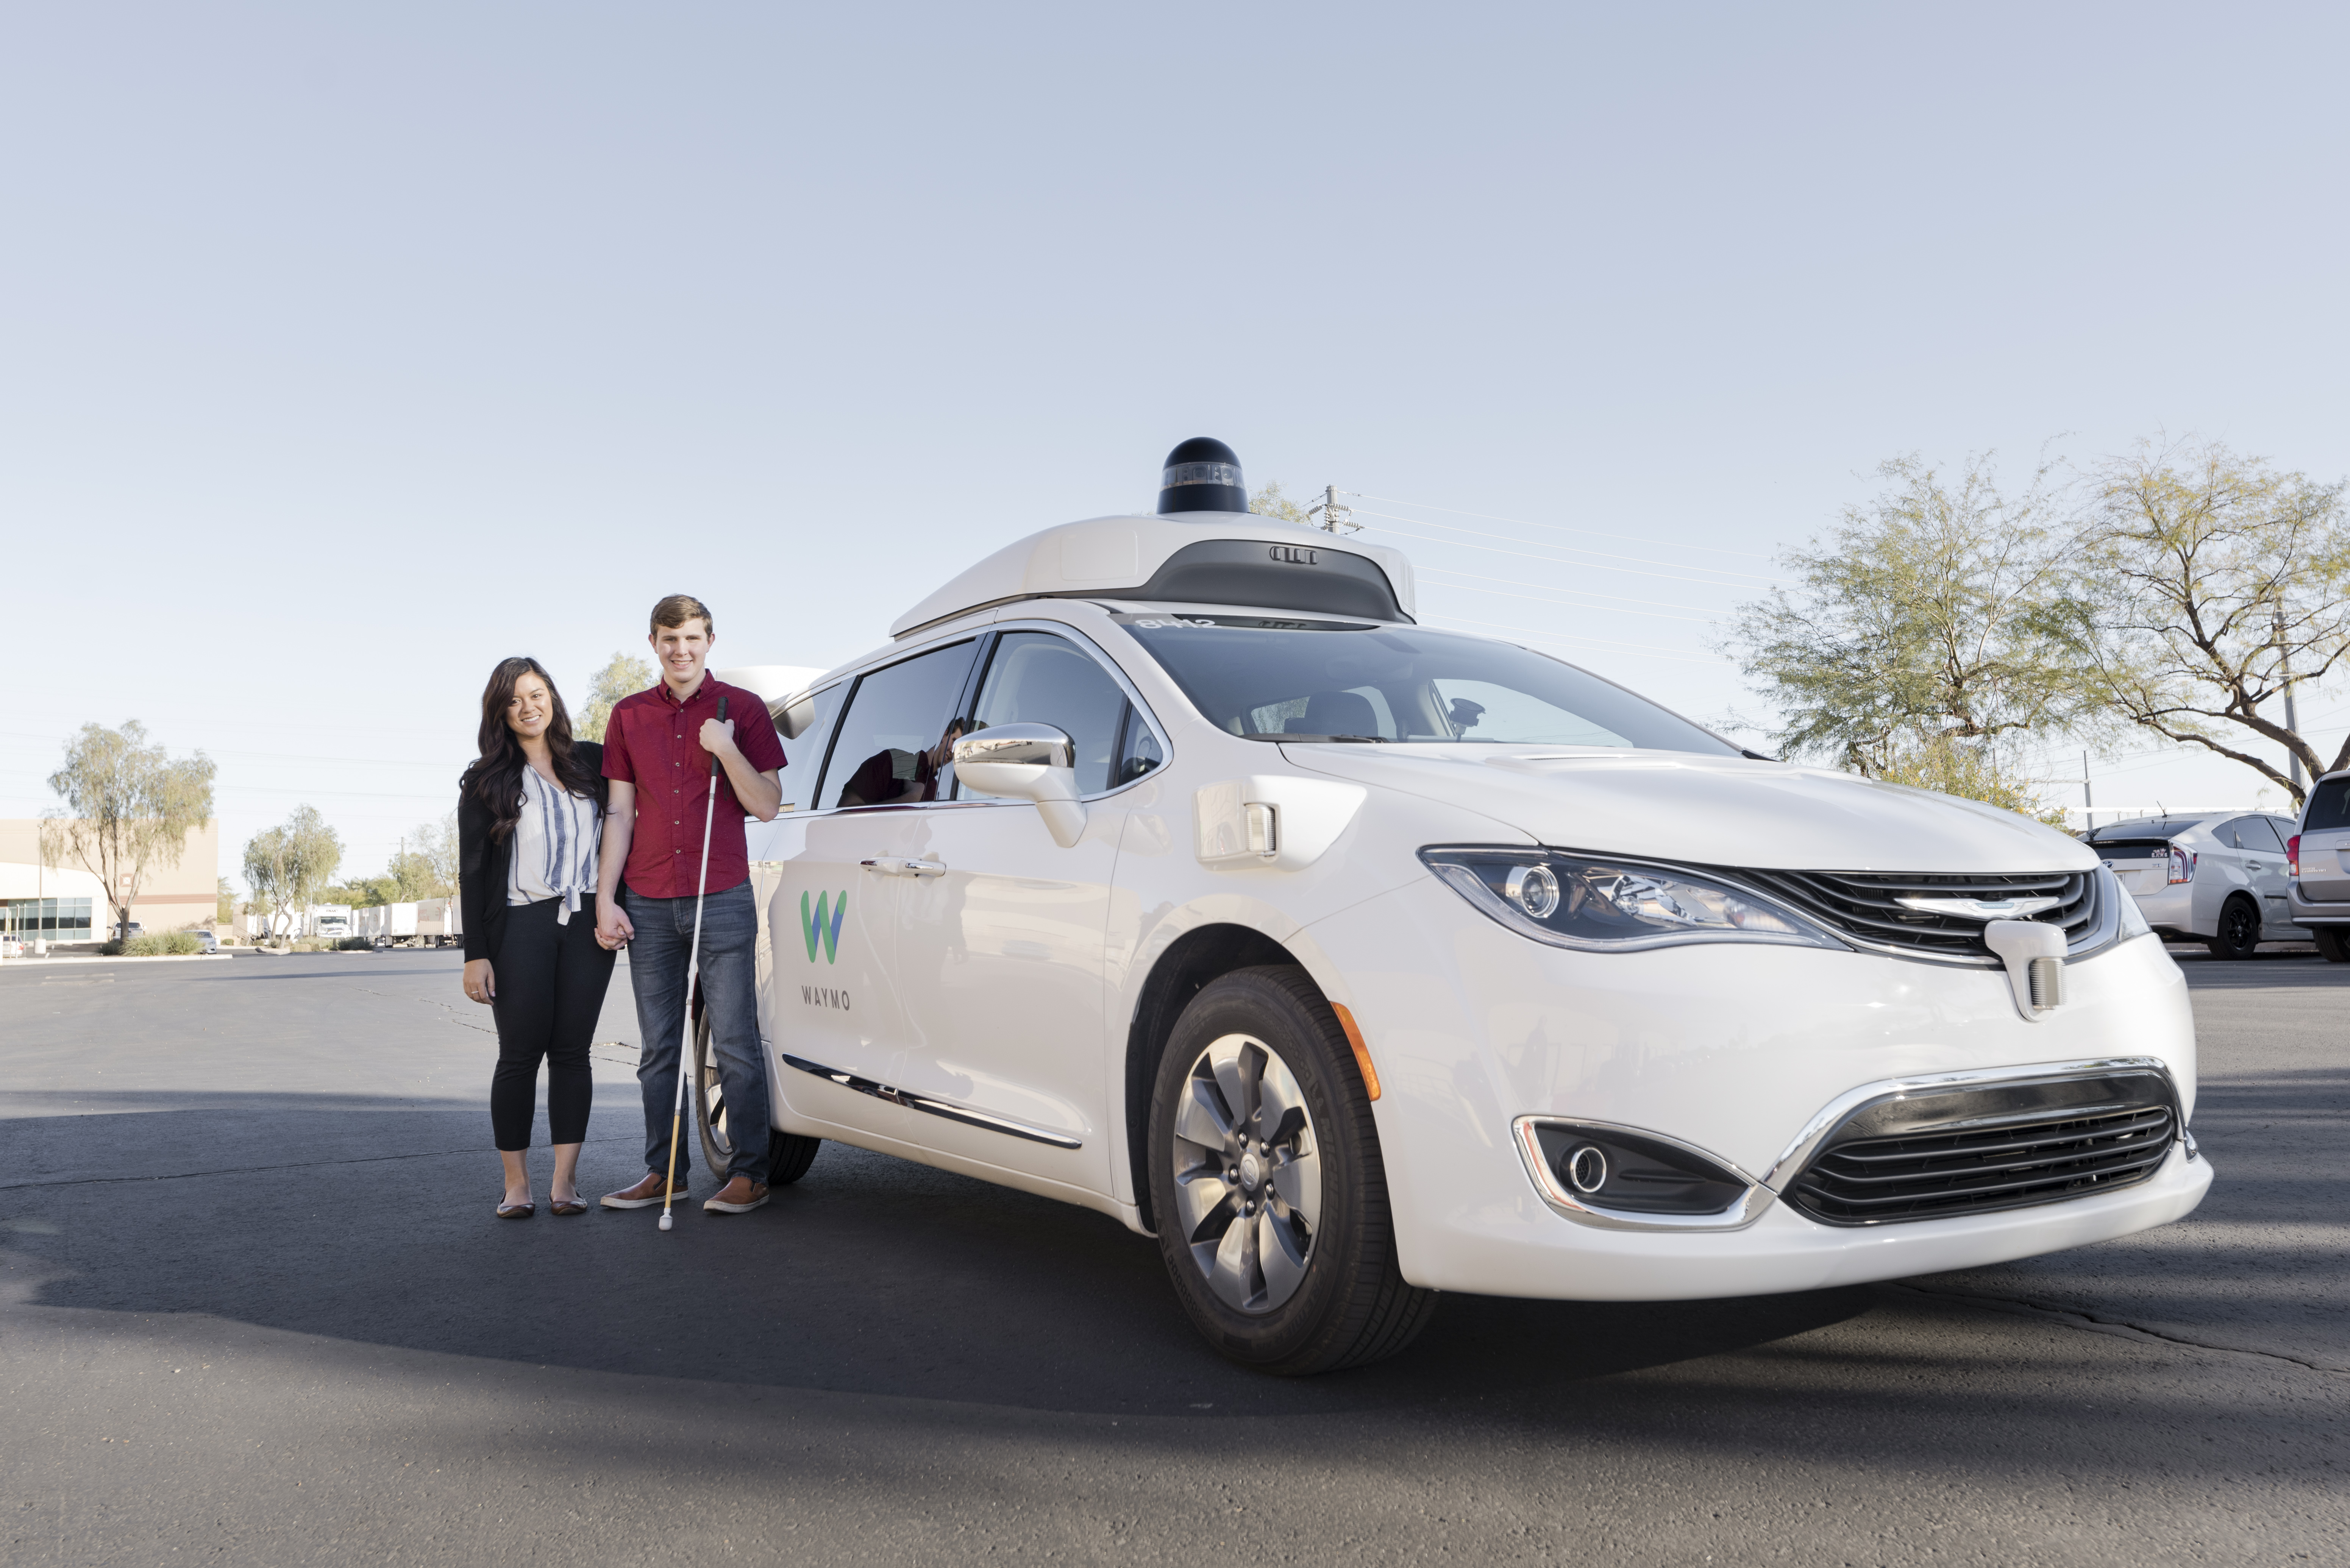 Max and Lillian standing beside a Waymo